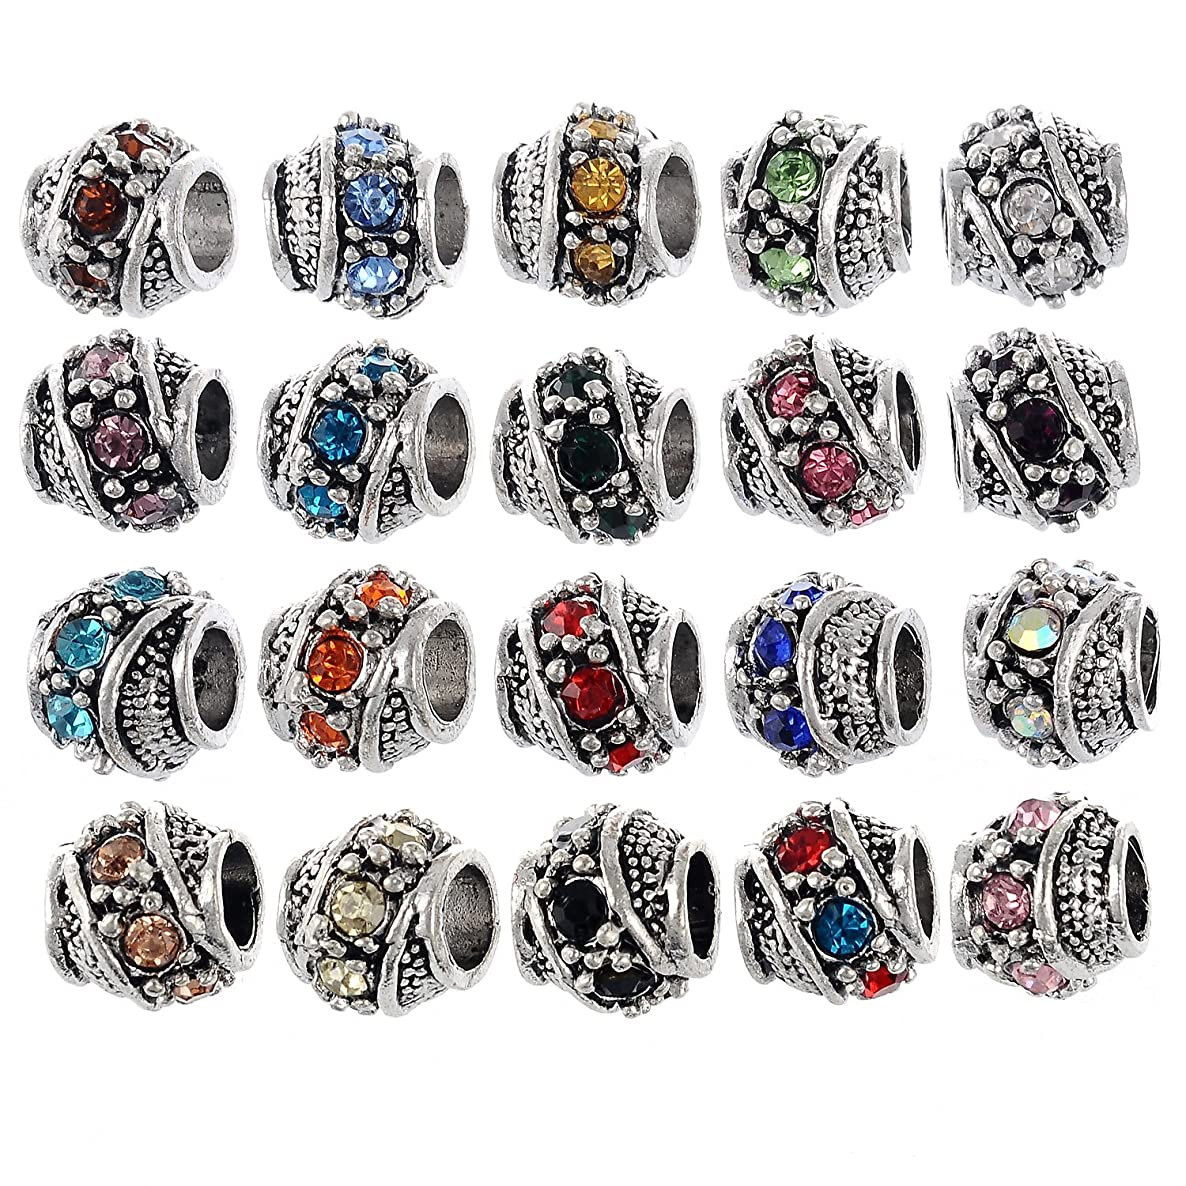 RUBYCA 60Pcs Silver Color Tibetan Charm Beads Crystals Rhinestones fit European Charm Bracelet Mix Color